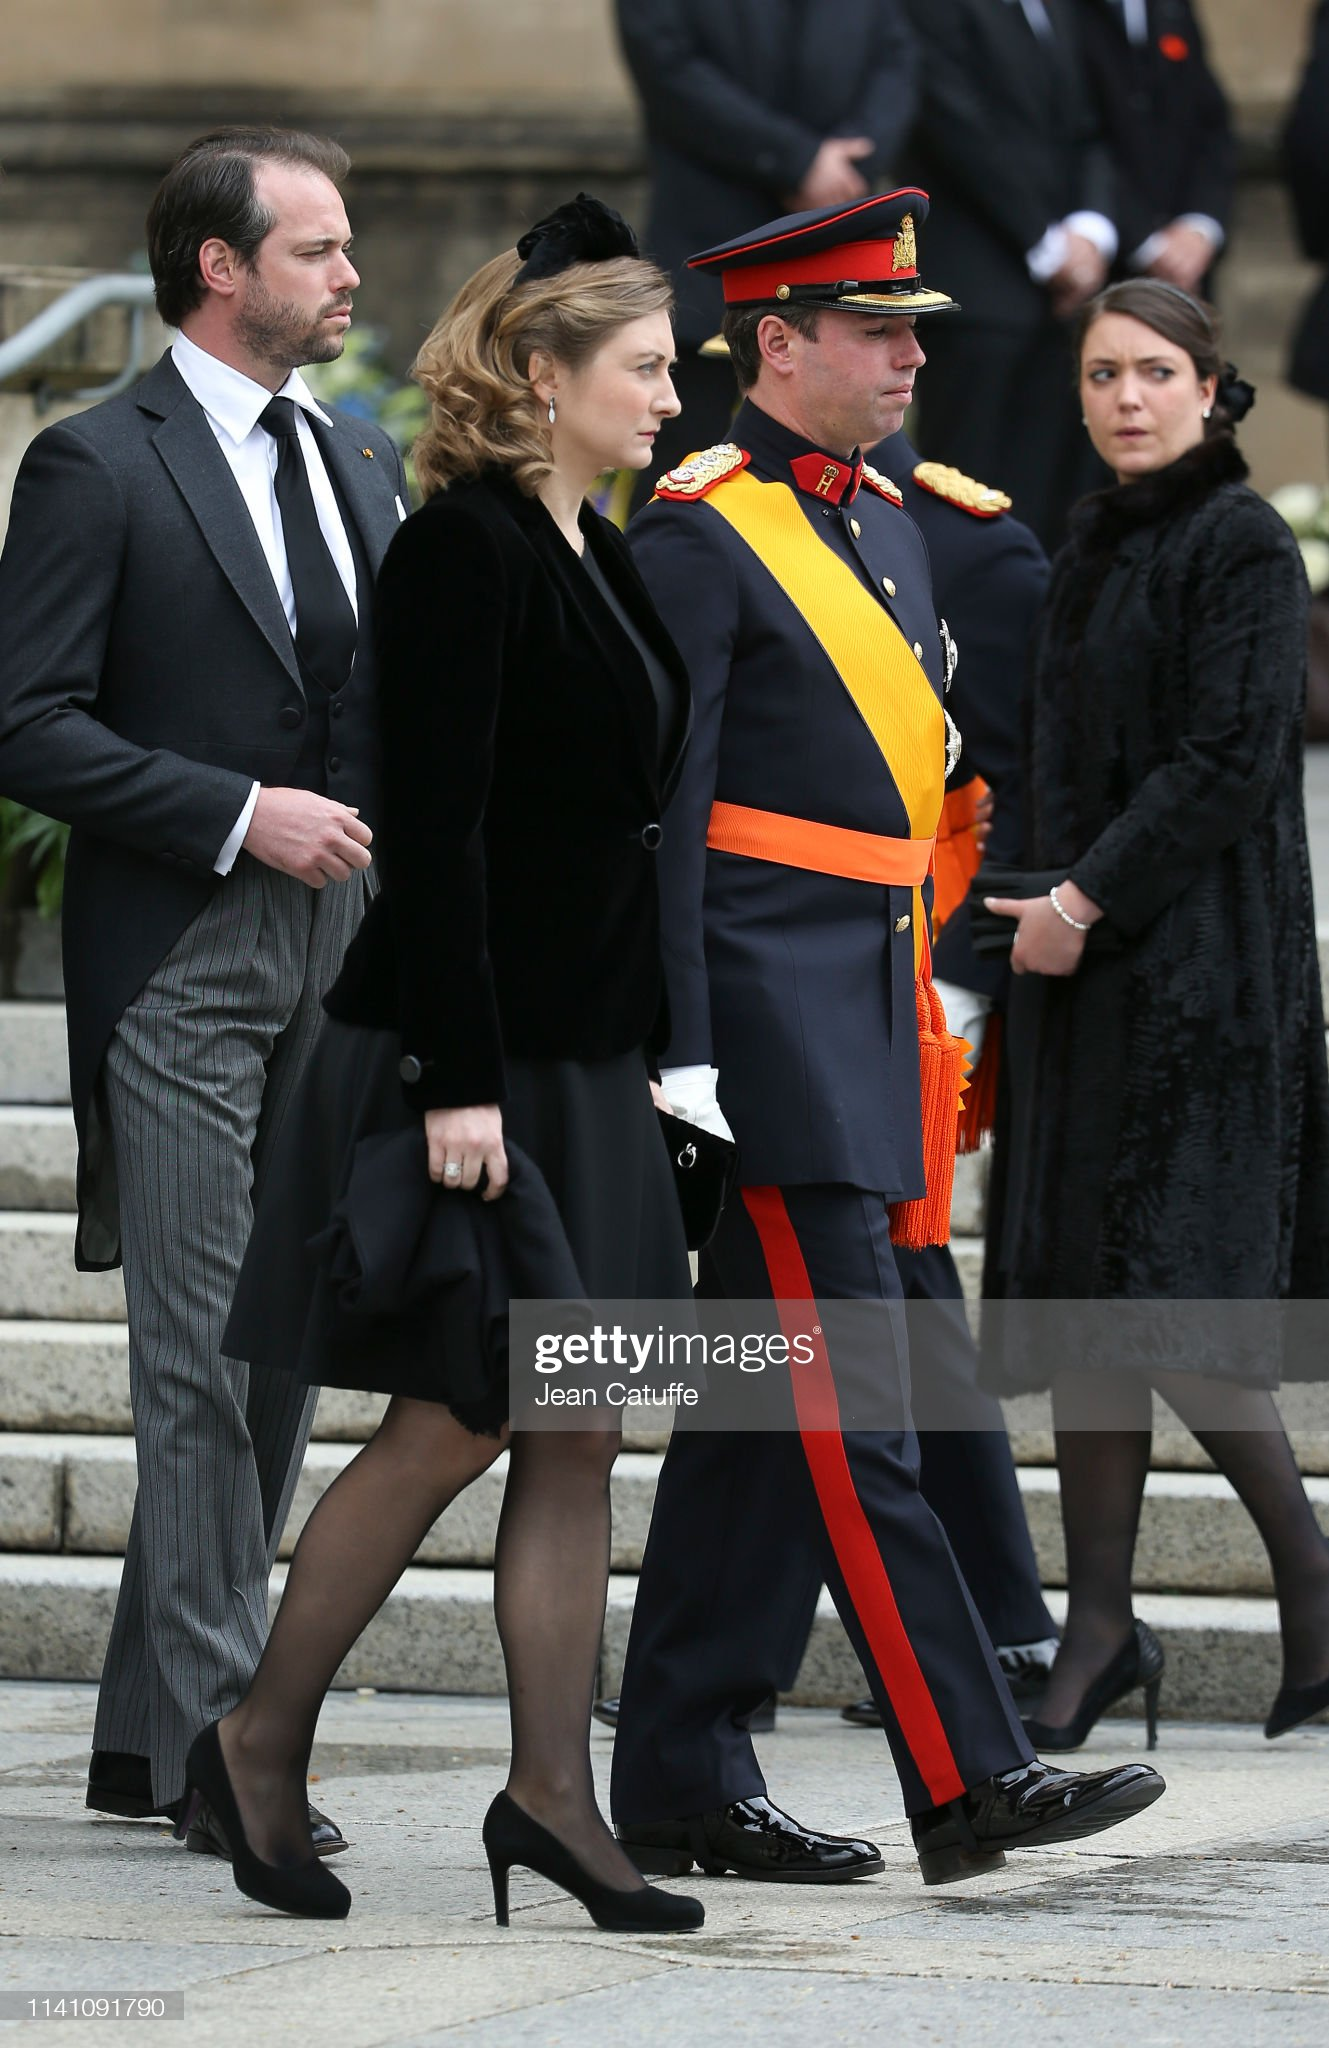 https://media.gettyimages.com/photos/guillaume-hereditary-grand-duke-of-luxembourg-and-his-wife-stephanie-picture-id1141091790?s=2048x2048